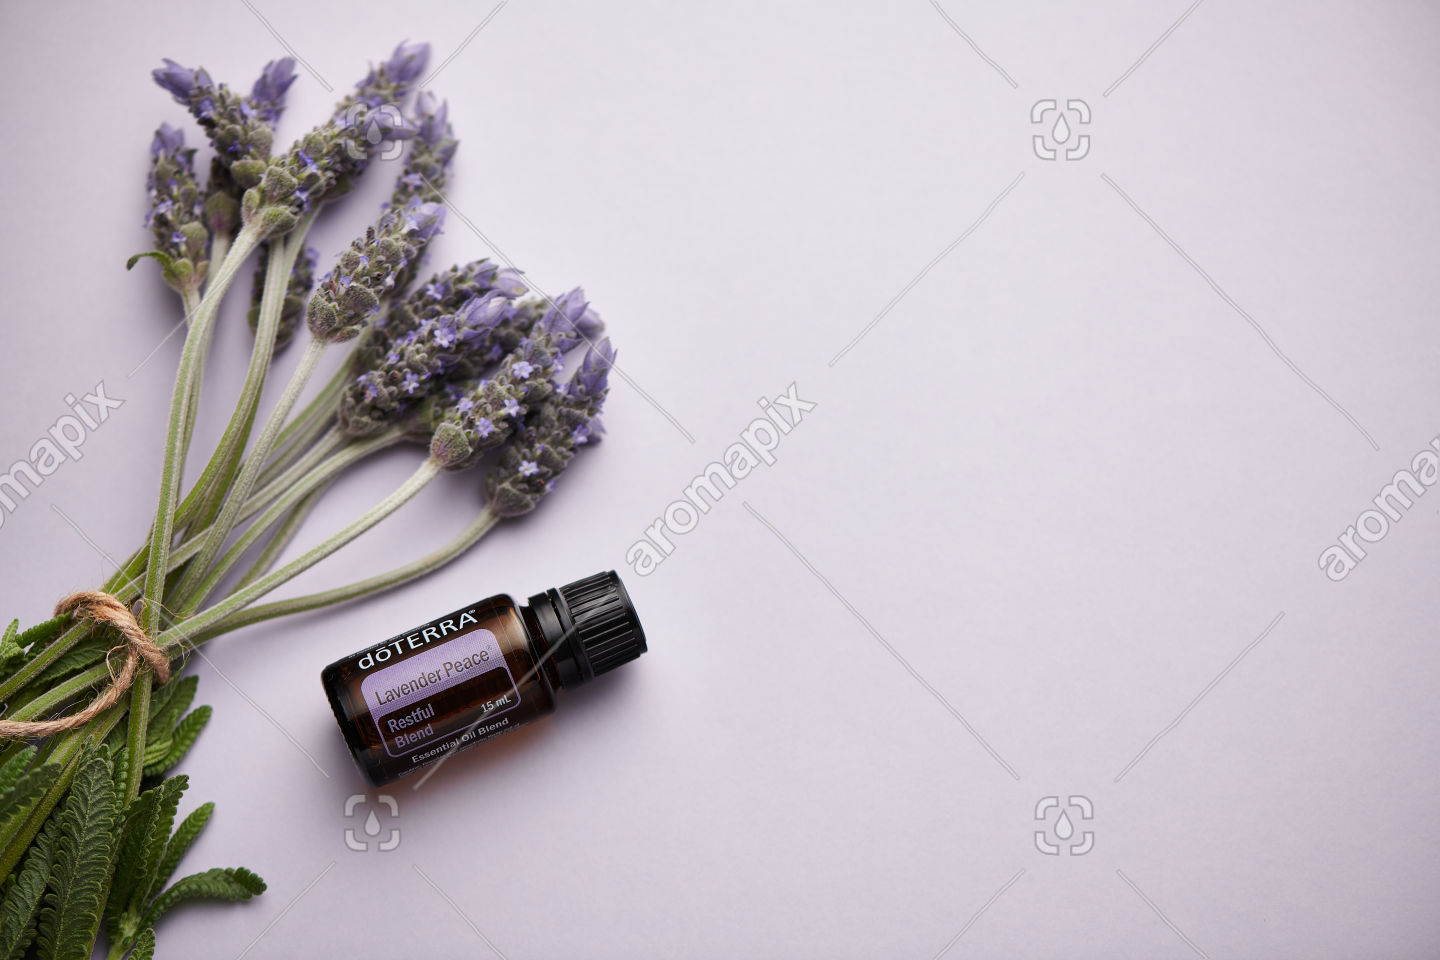 doTERRA Lavender Peace and lavender flowers on light purple card stock